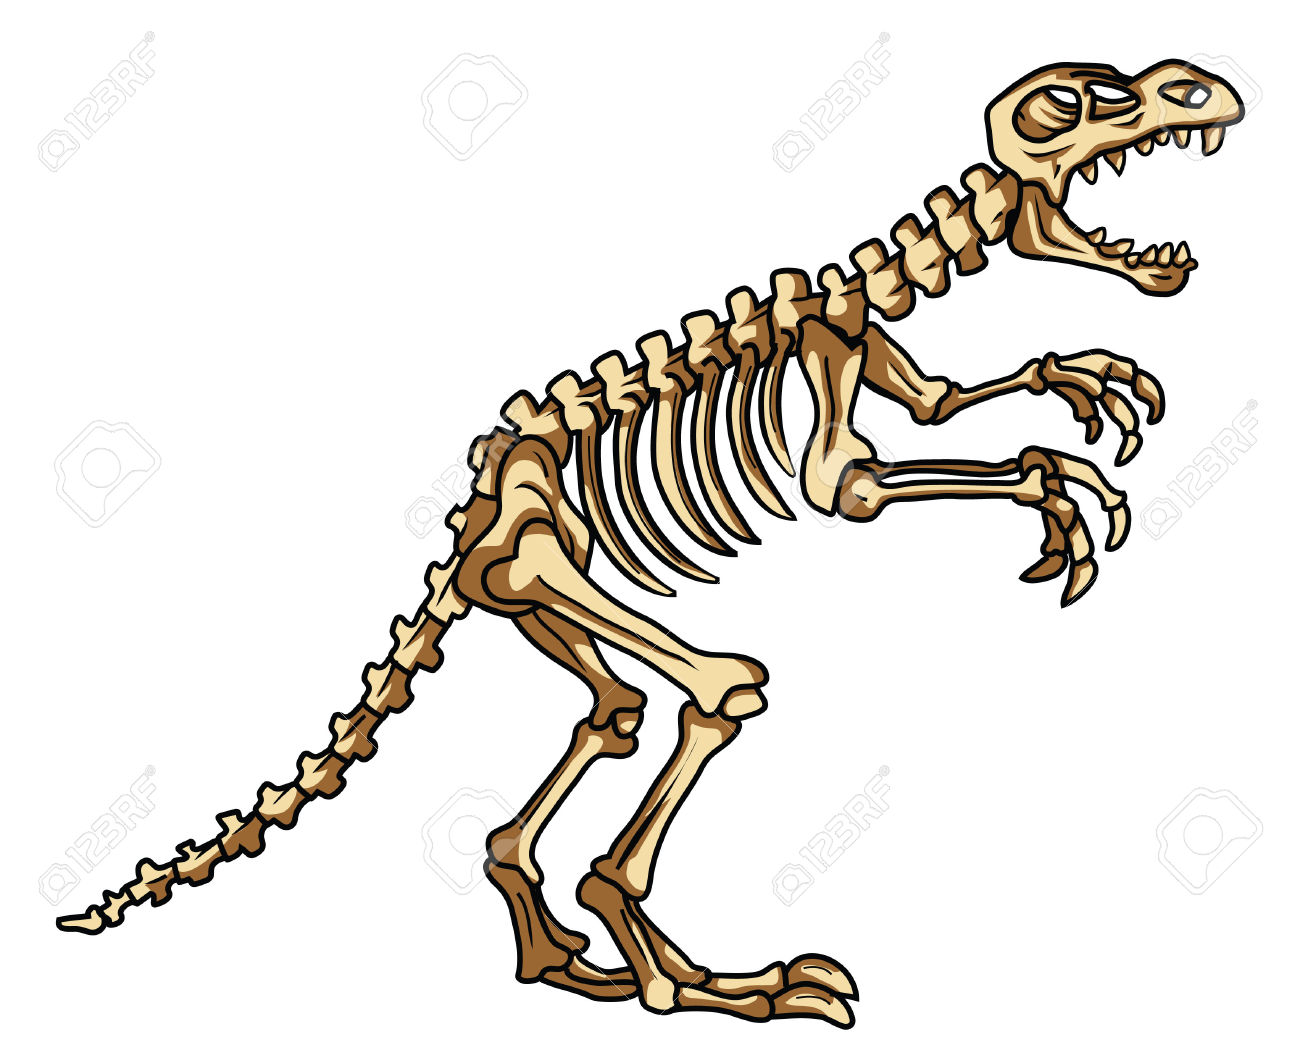 Dinosaur skeleton clipart 4 » Clipart Station.